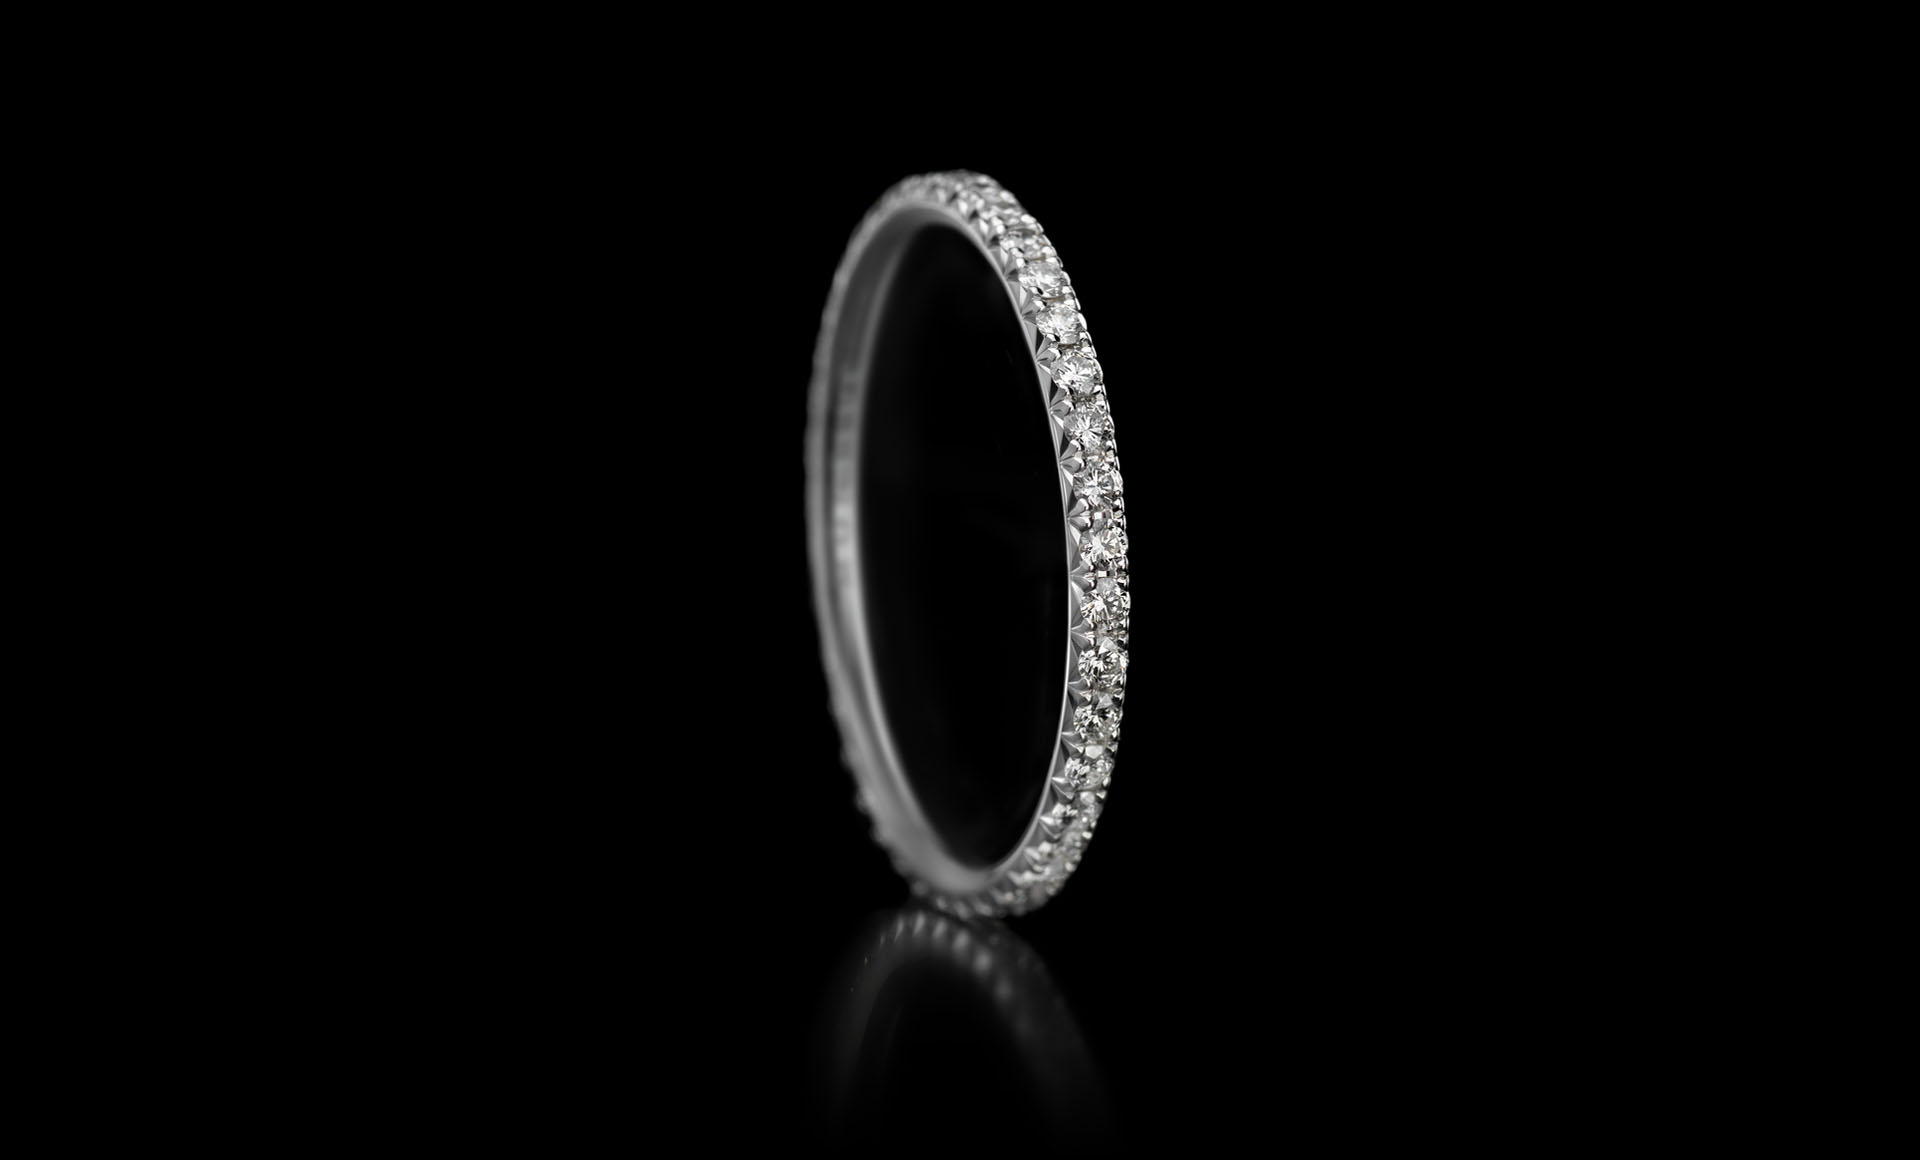 Montluc - Halo No.1. Eternity ring, full set in diamond - set with a continuous line of perfectly selected, round cut diamonds.